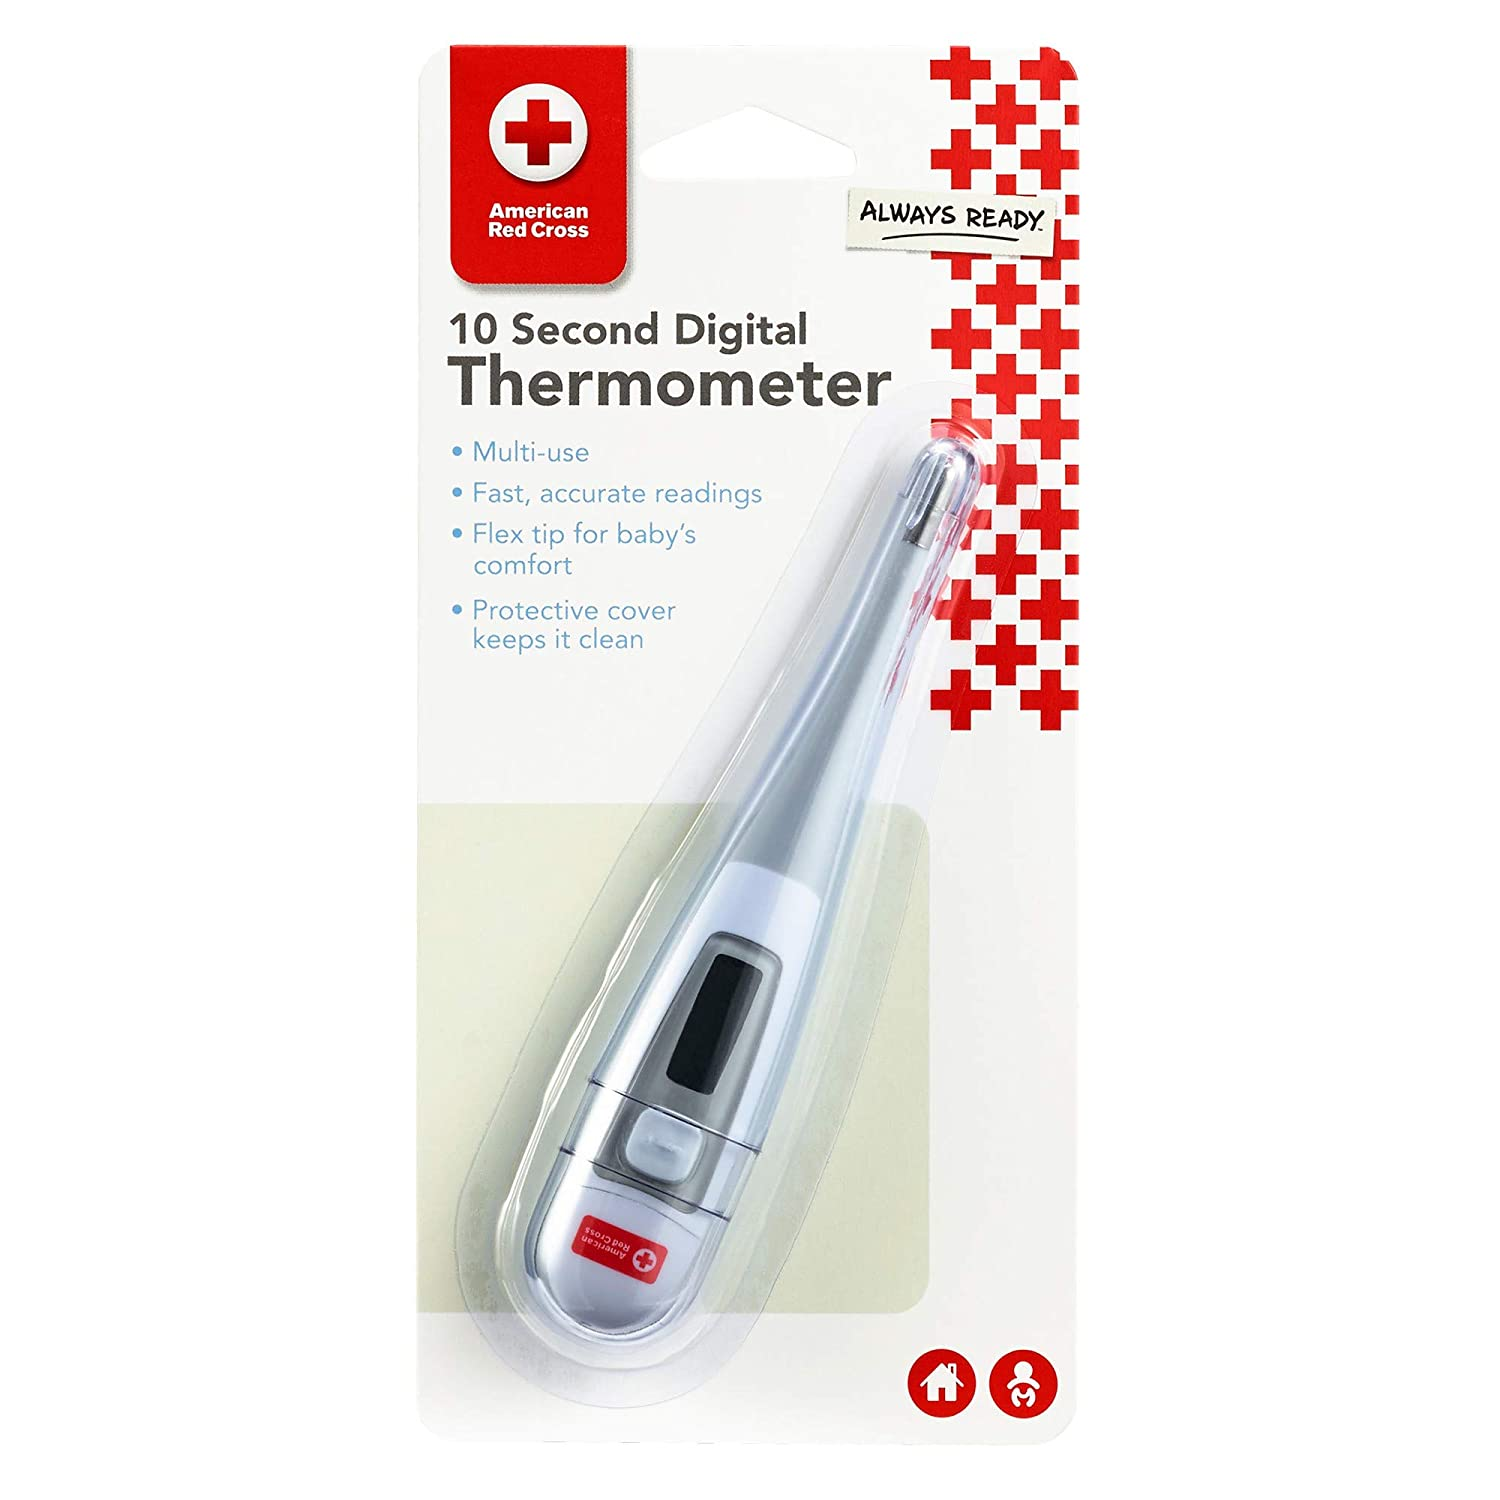 American Red Cross 10 Second Digital Thermometer - Multi-Use Thermometer with Protective Cover